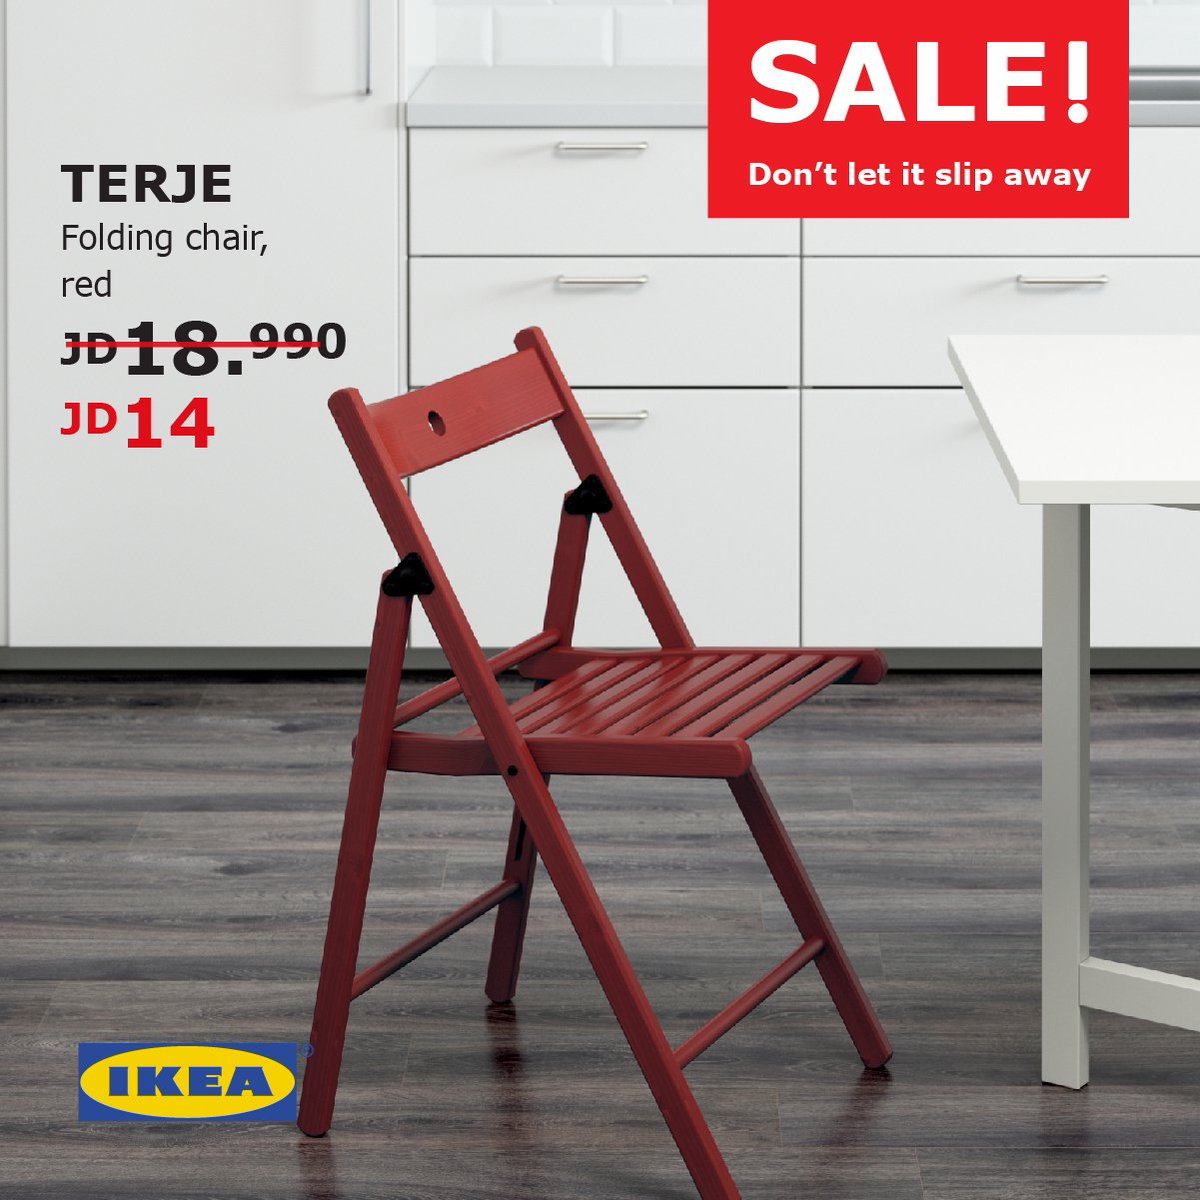 Get the chair for JD 14 instead of JD 18.990 Offer is valid until May 2nd or until stock lasts.pic.twitter.com/0Q8N8de1KO  sc 1 st  Twitter & IKEA Jordan on Twitter: